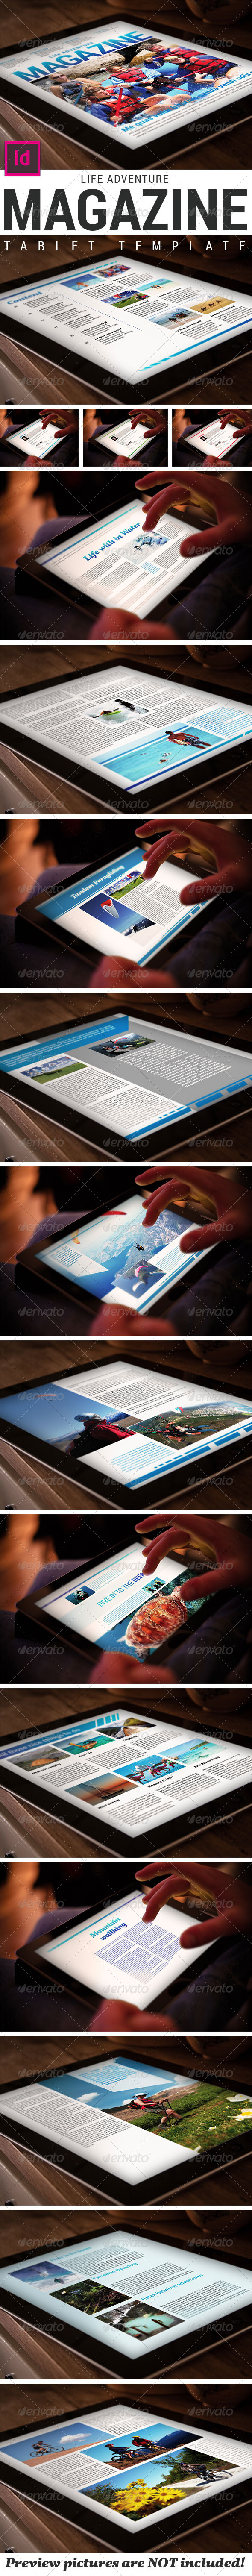 GraphicRiver Tablet Adventure Magazine Template 7812264